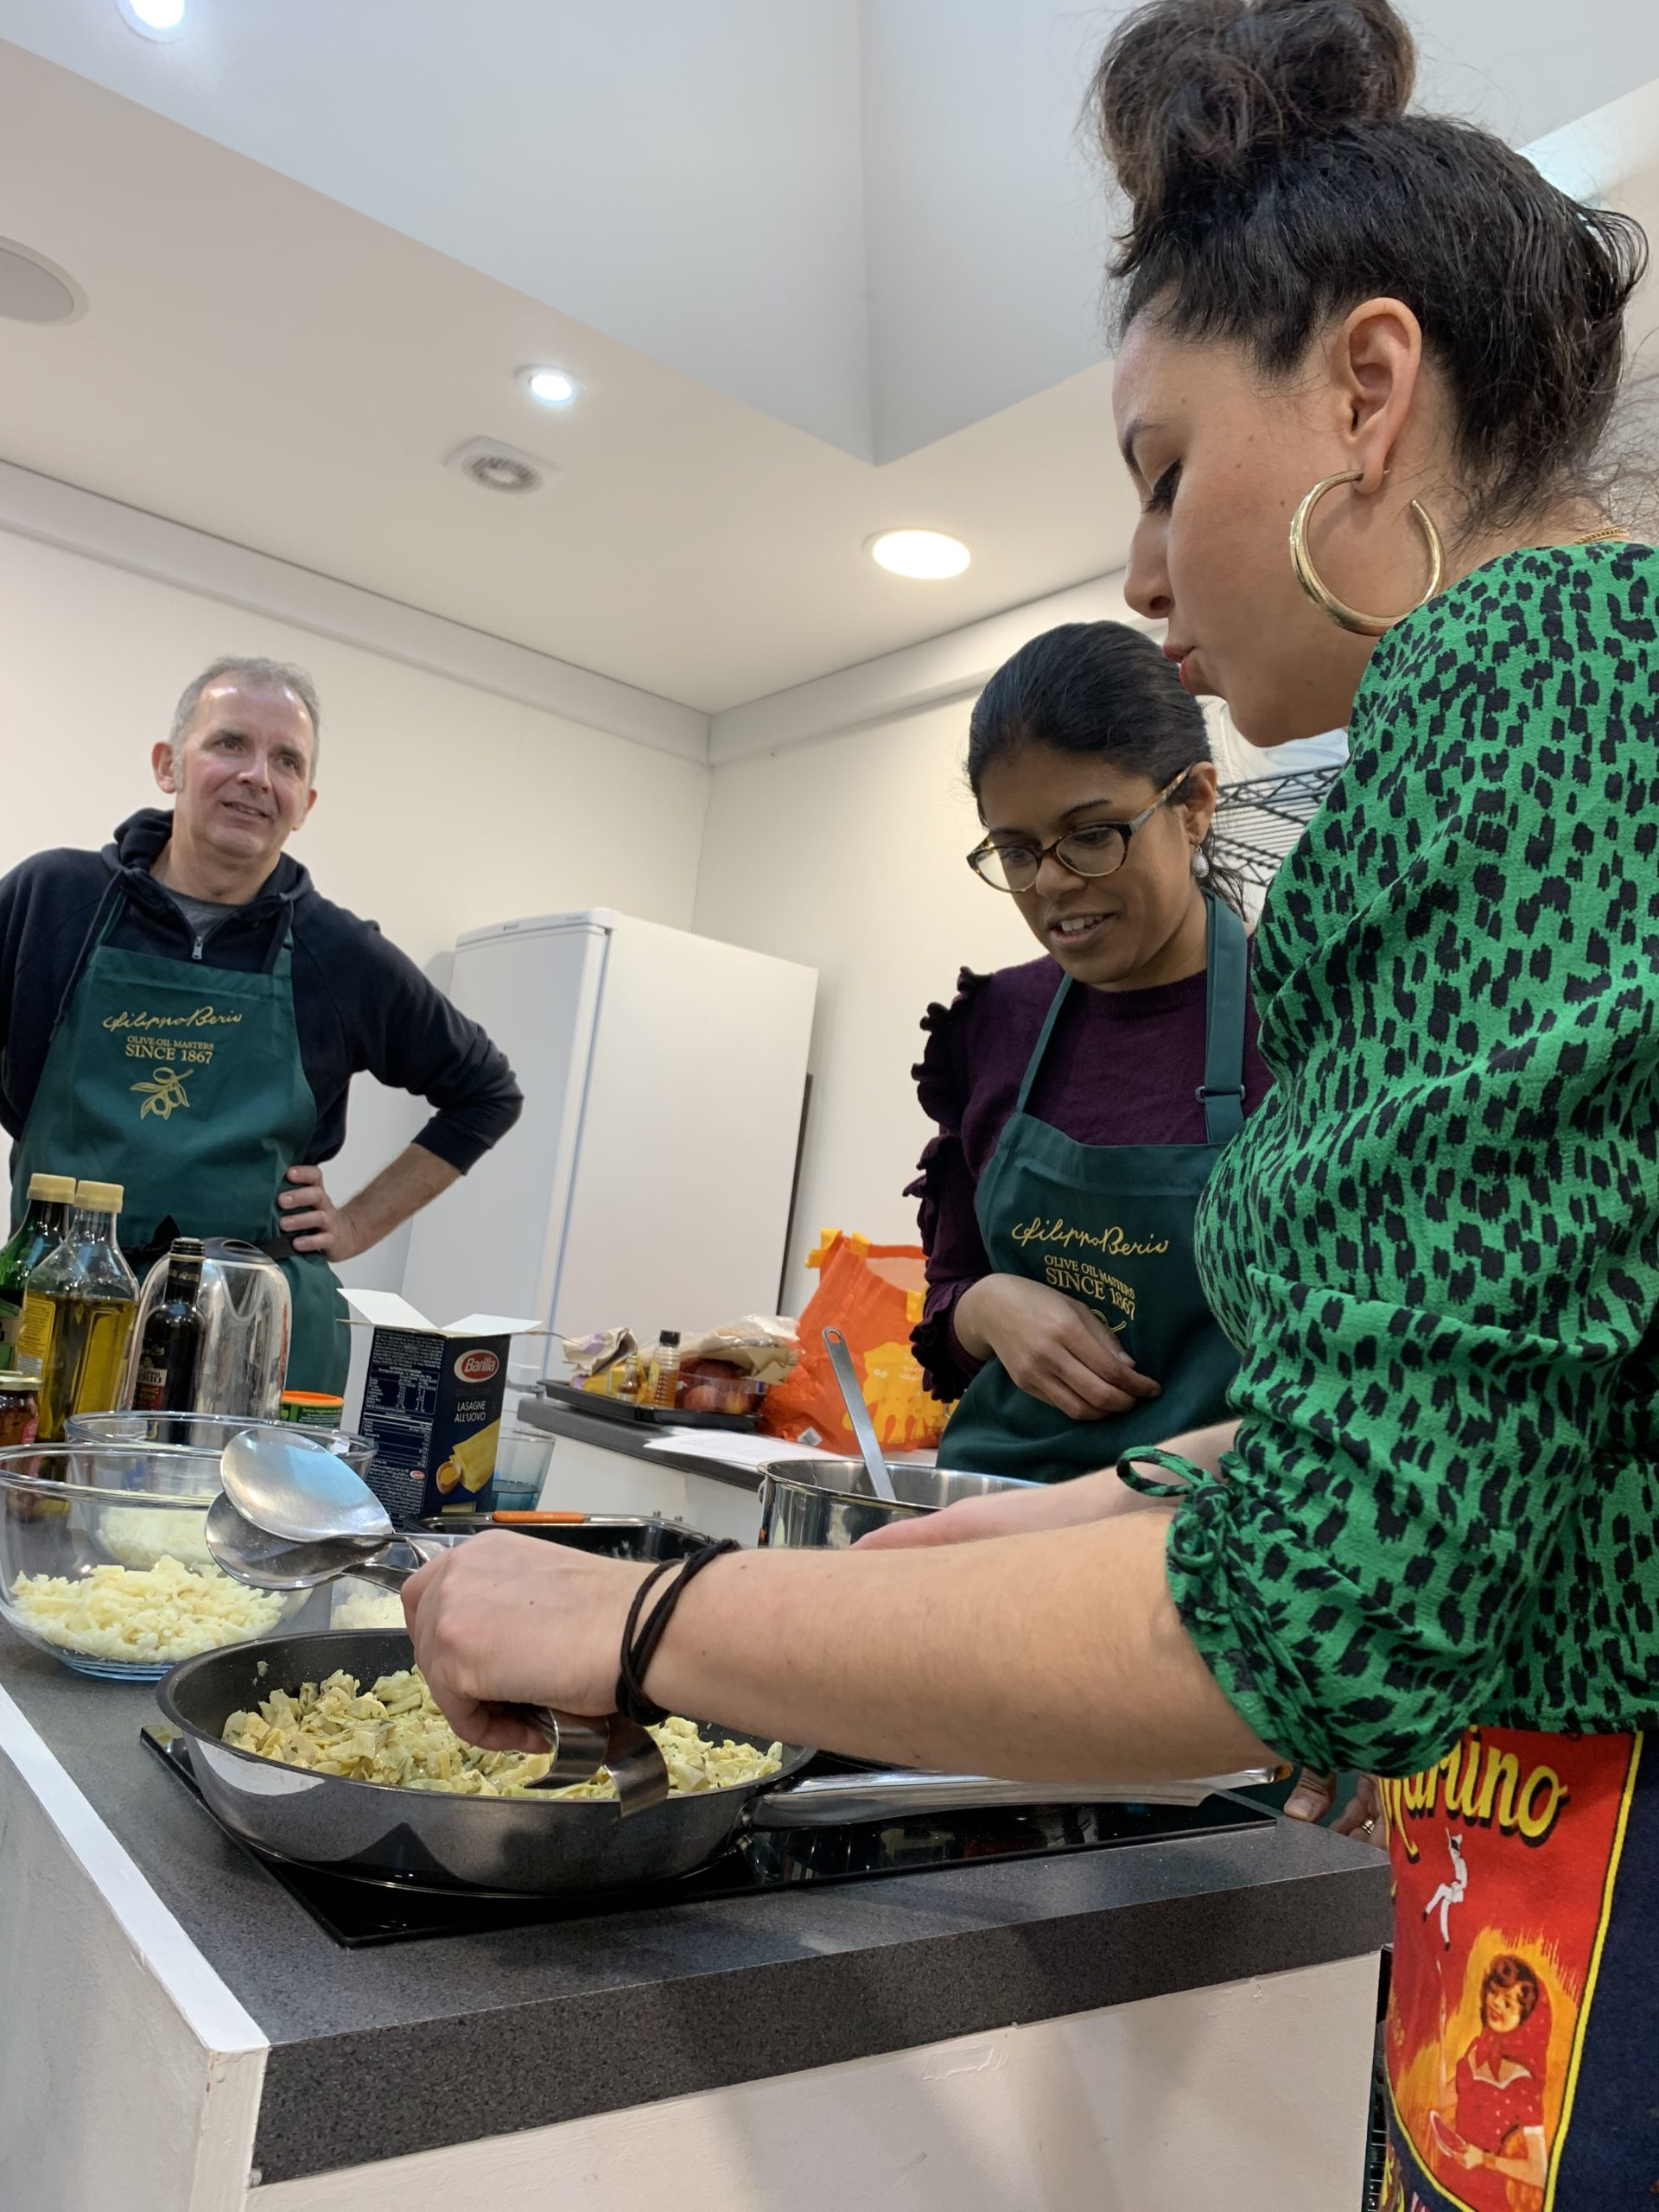 The Tiny Italian Private Cooking classes